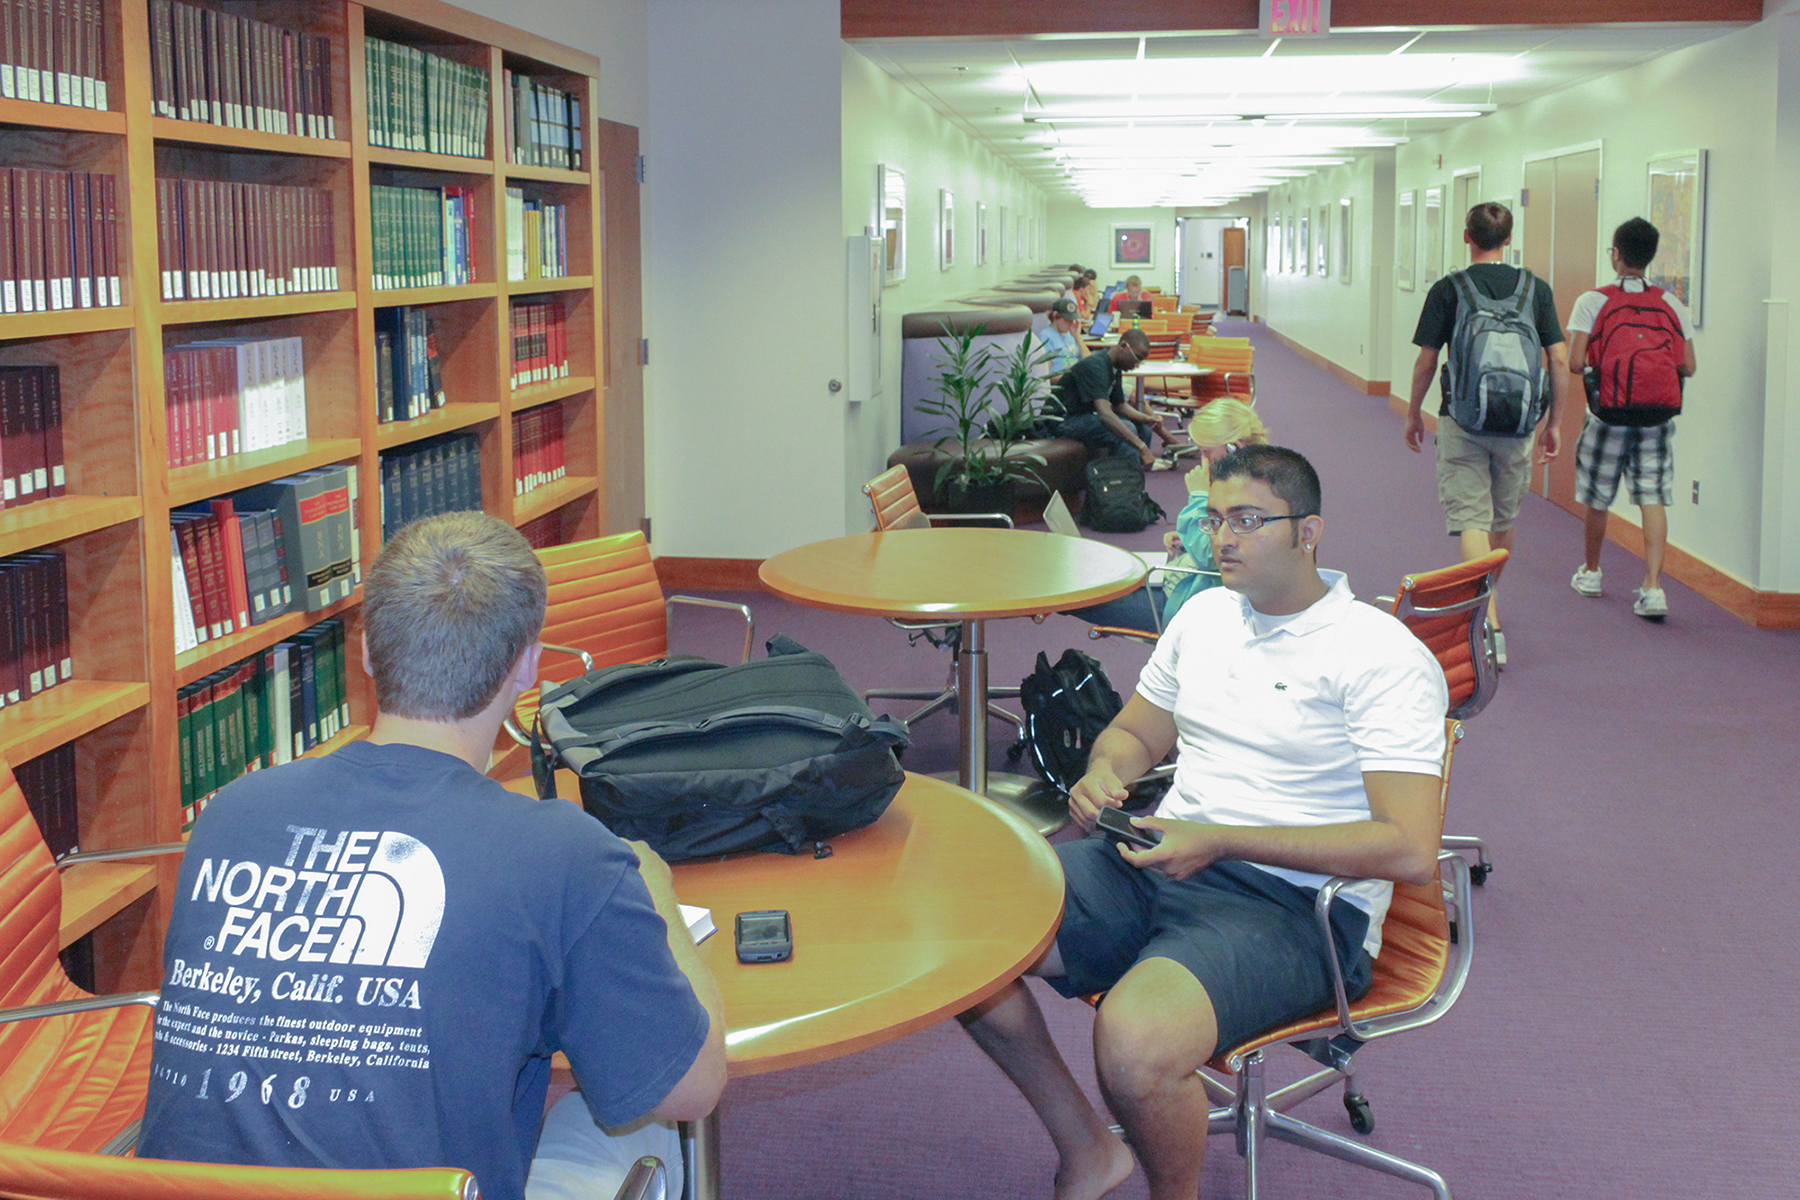 Two students sitting next to a wall of bookshelves, with several other tables in a row behind them